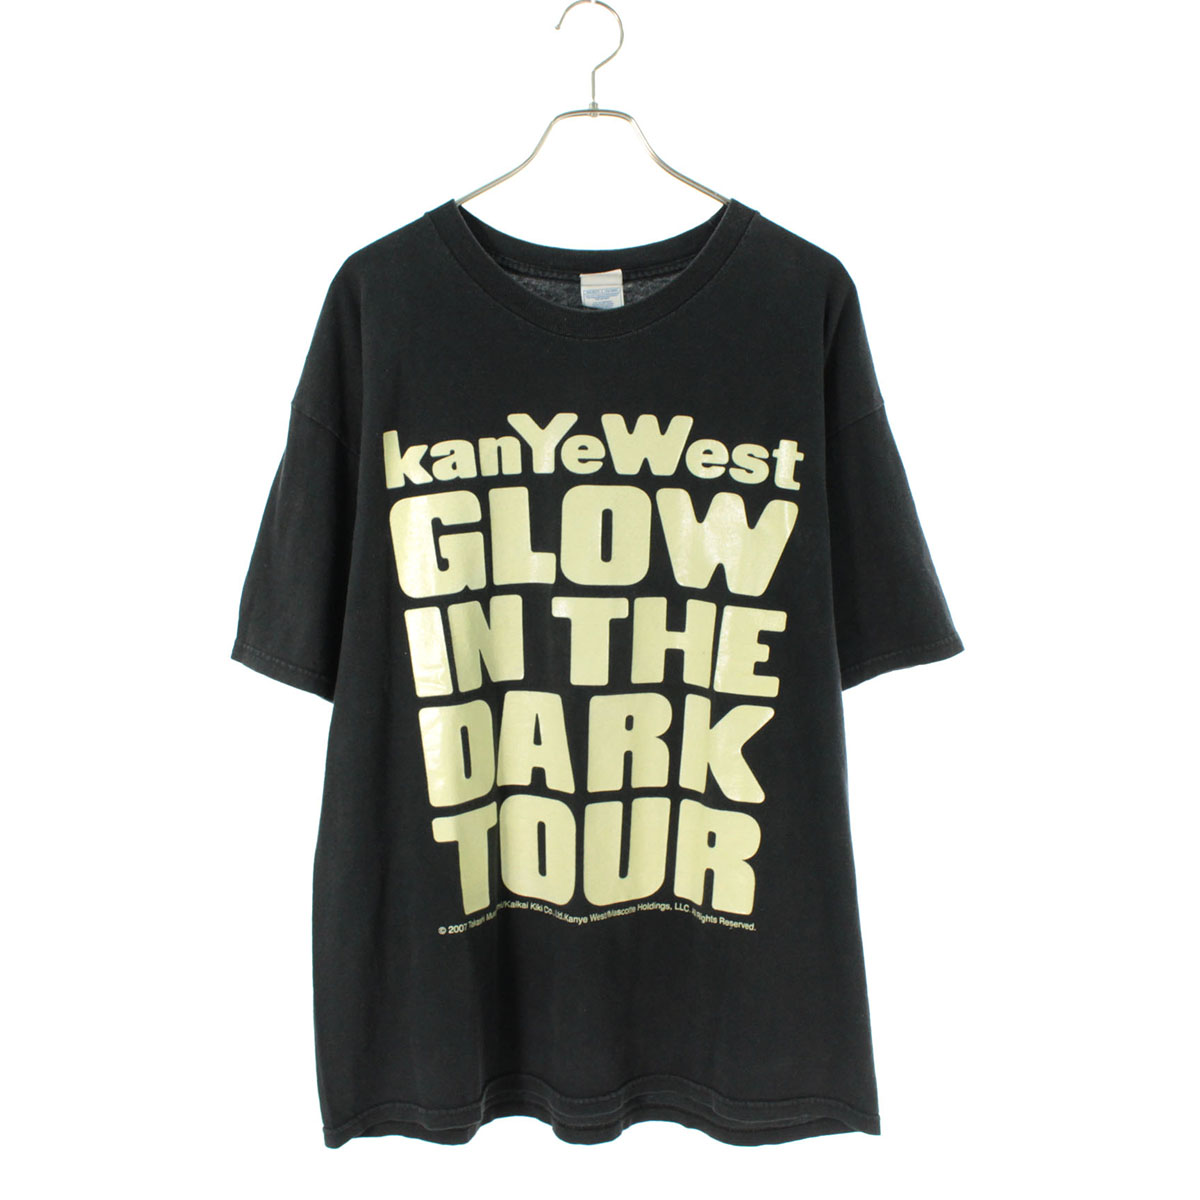 KANYE WEST × 村上隆 GLOW IN THE DARK TOUR (LUMINOUS FONT)